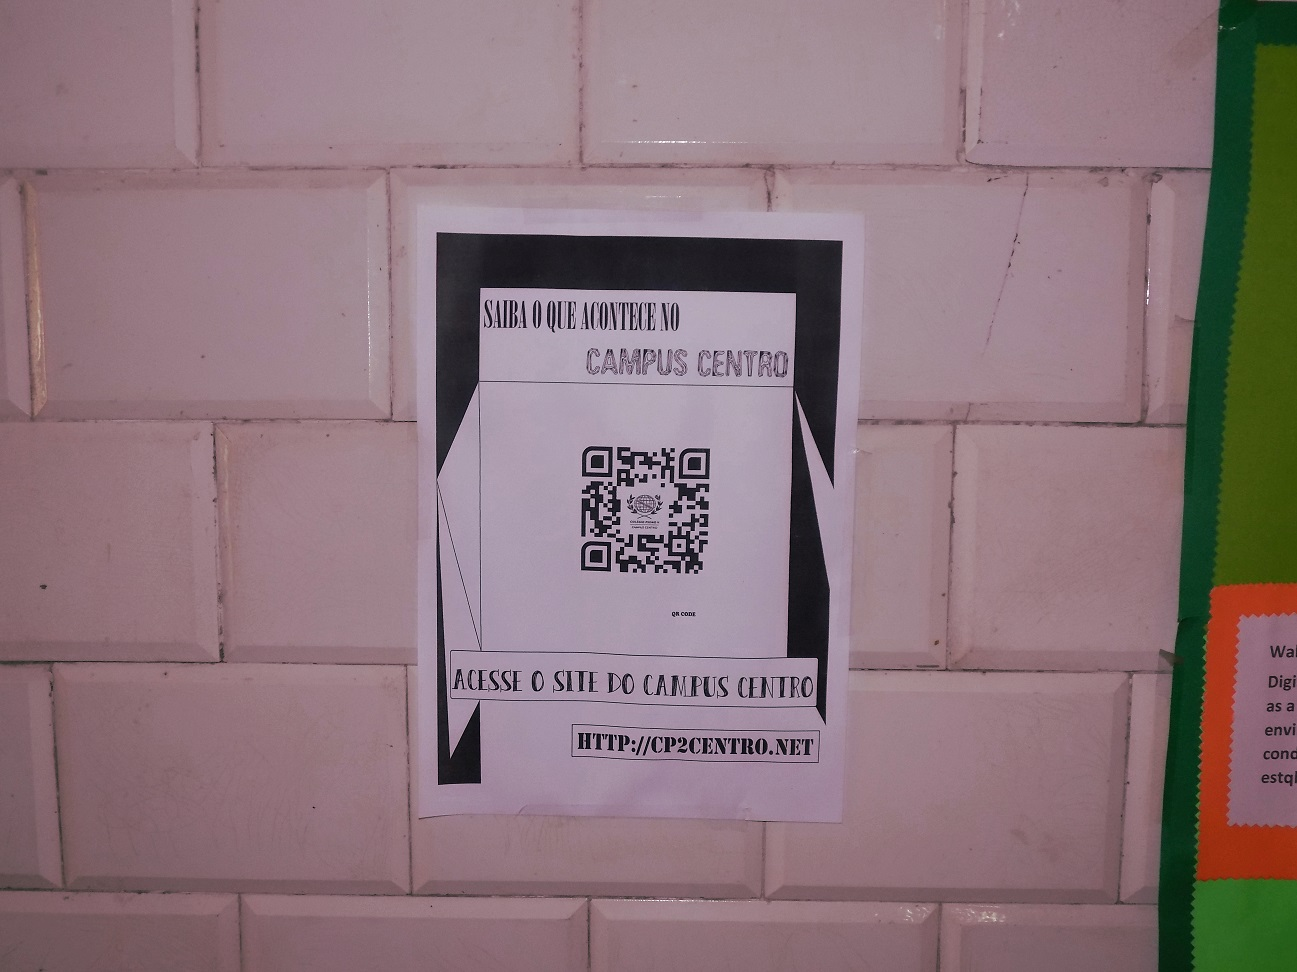 Cartaz com QR Code na parede do campus